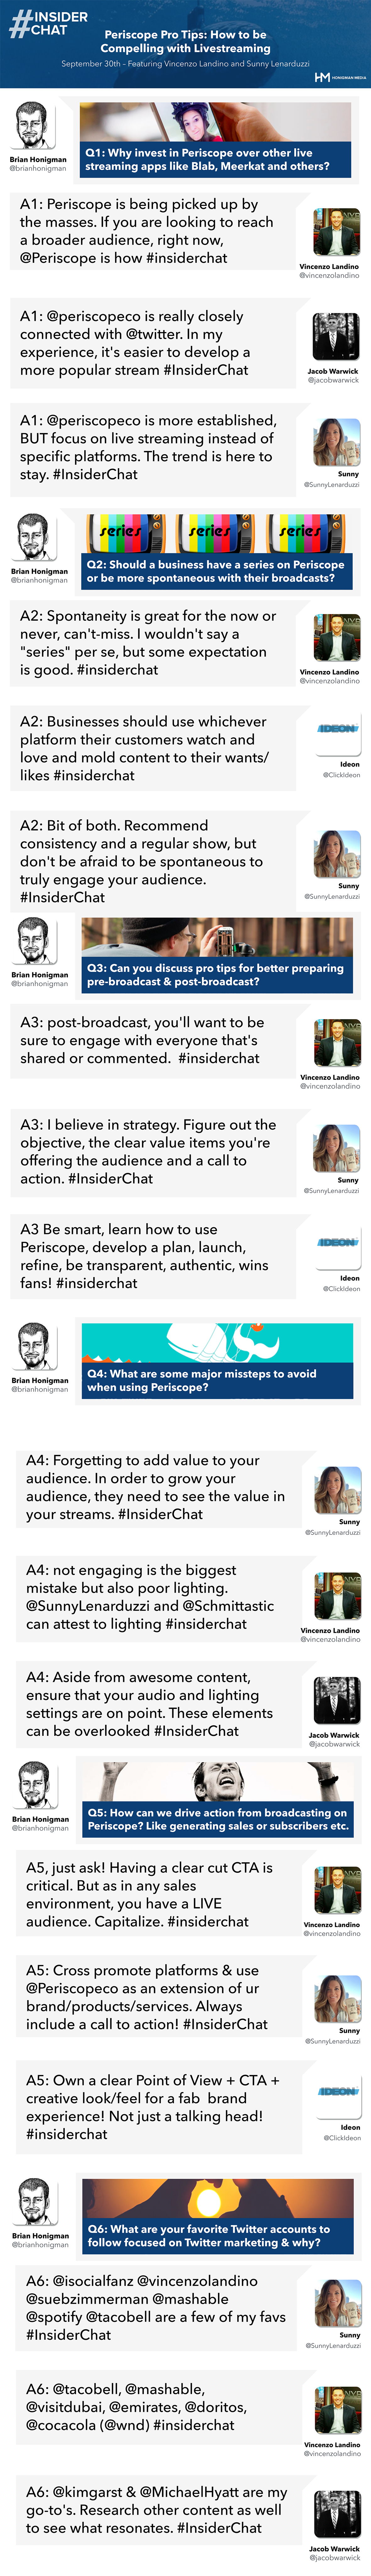 Insider-chat-infographic-3-1